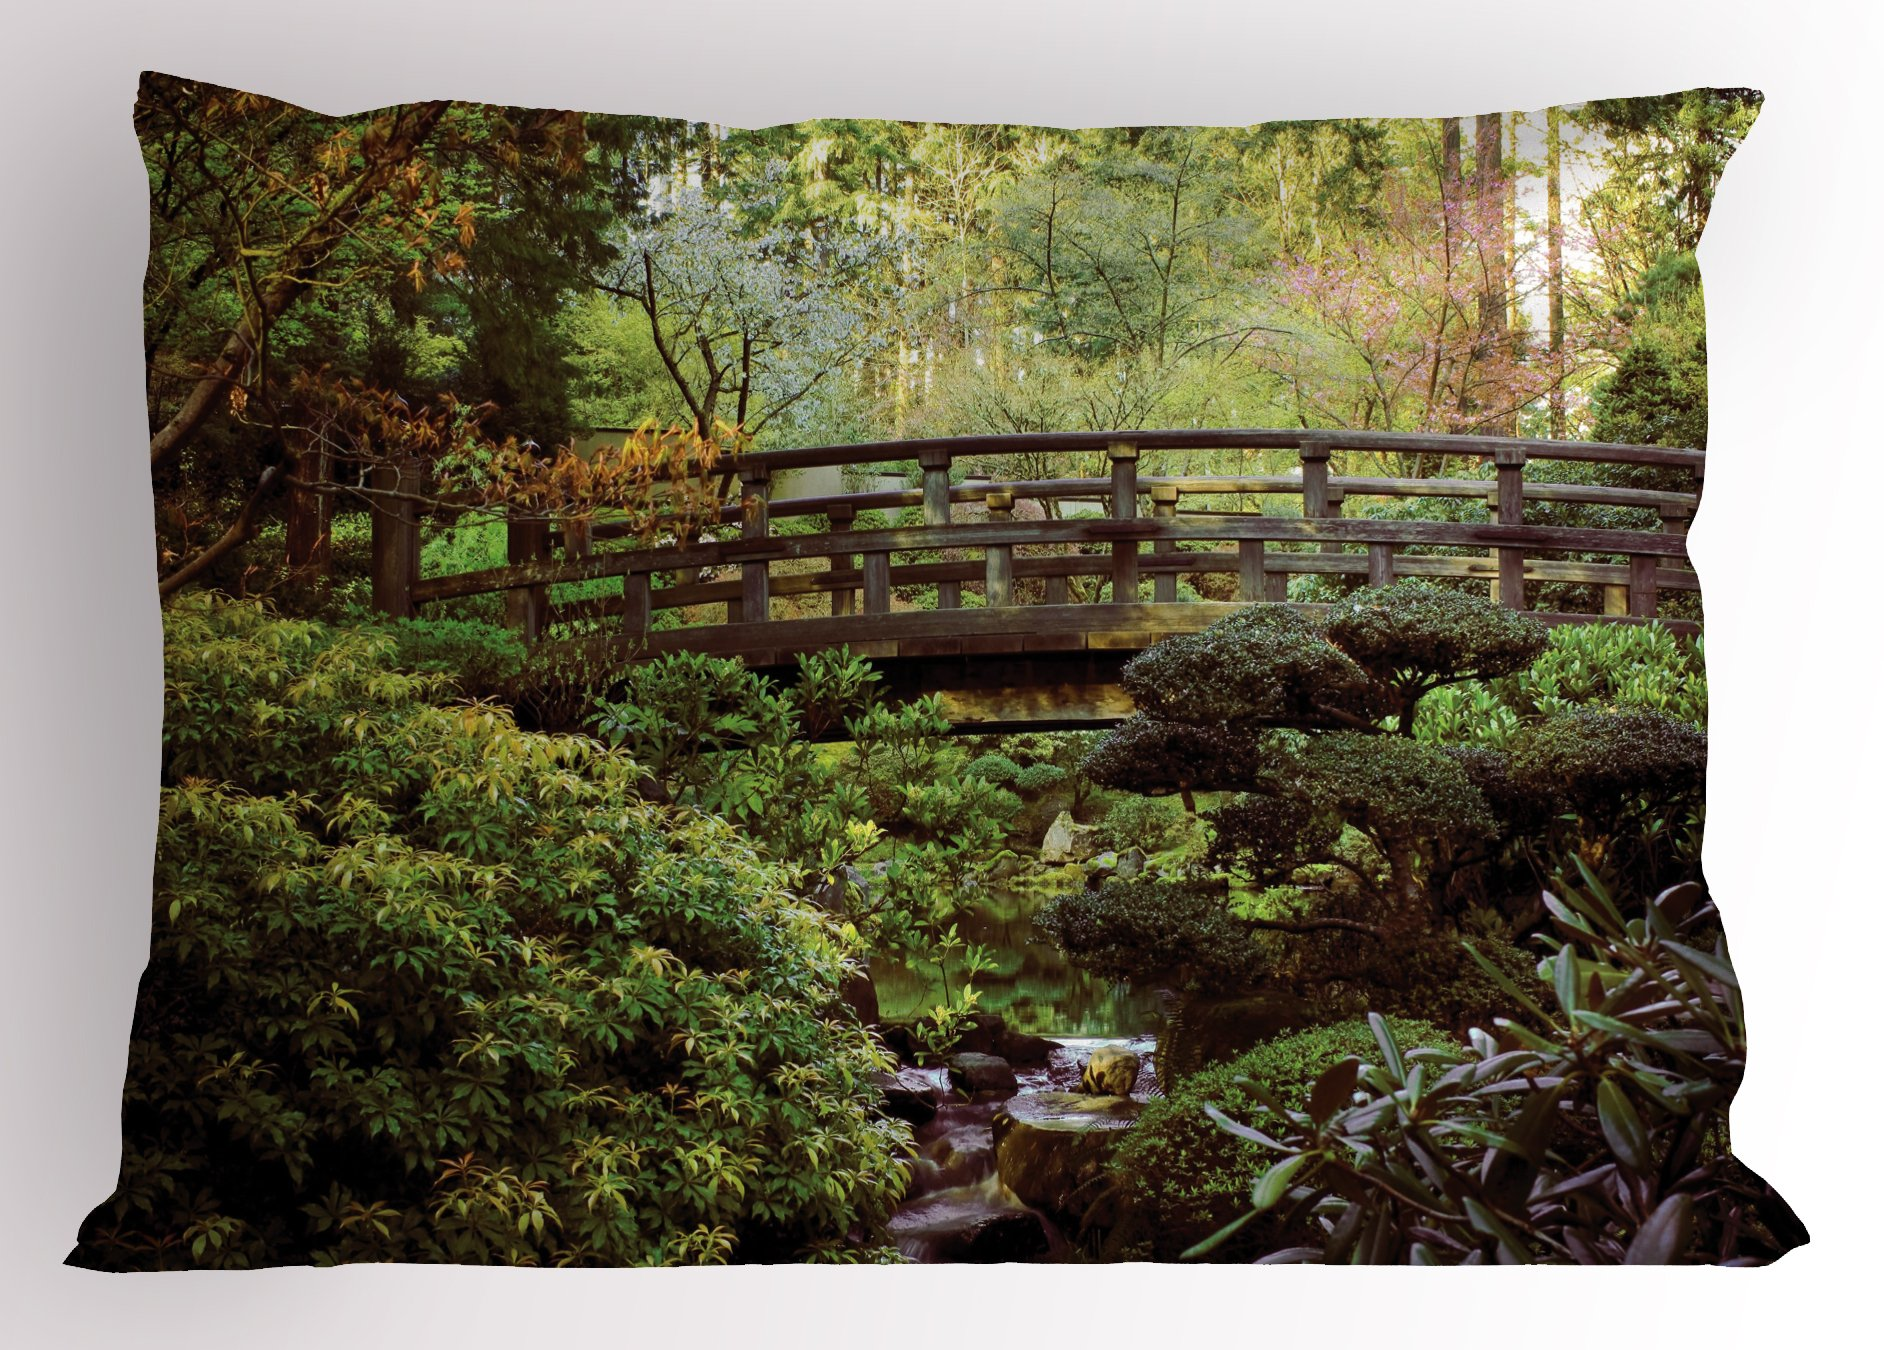 Lunarable Japanese Pillow Sham, Wood Bridge in Forest Serene Arboretum Relax Rest Spiritual Route Peace Landscape, Decorative Standard King Size Printed Pillowcase, 36 X 20 inches, Green Brown